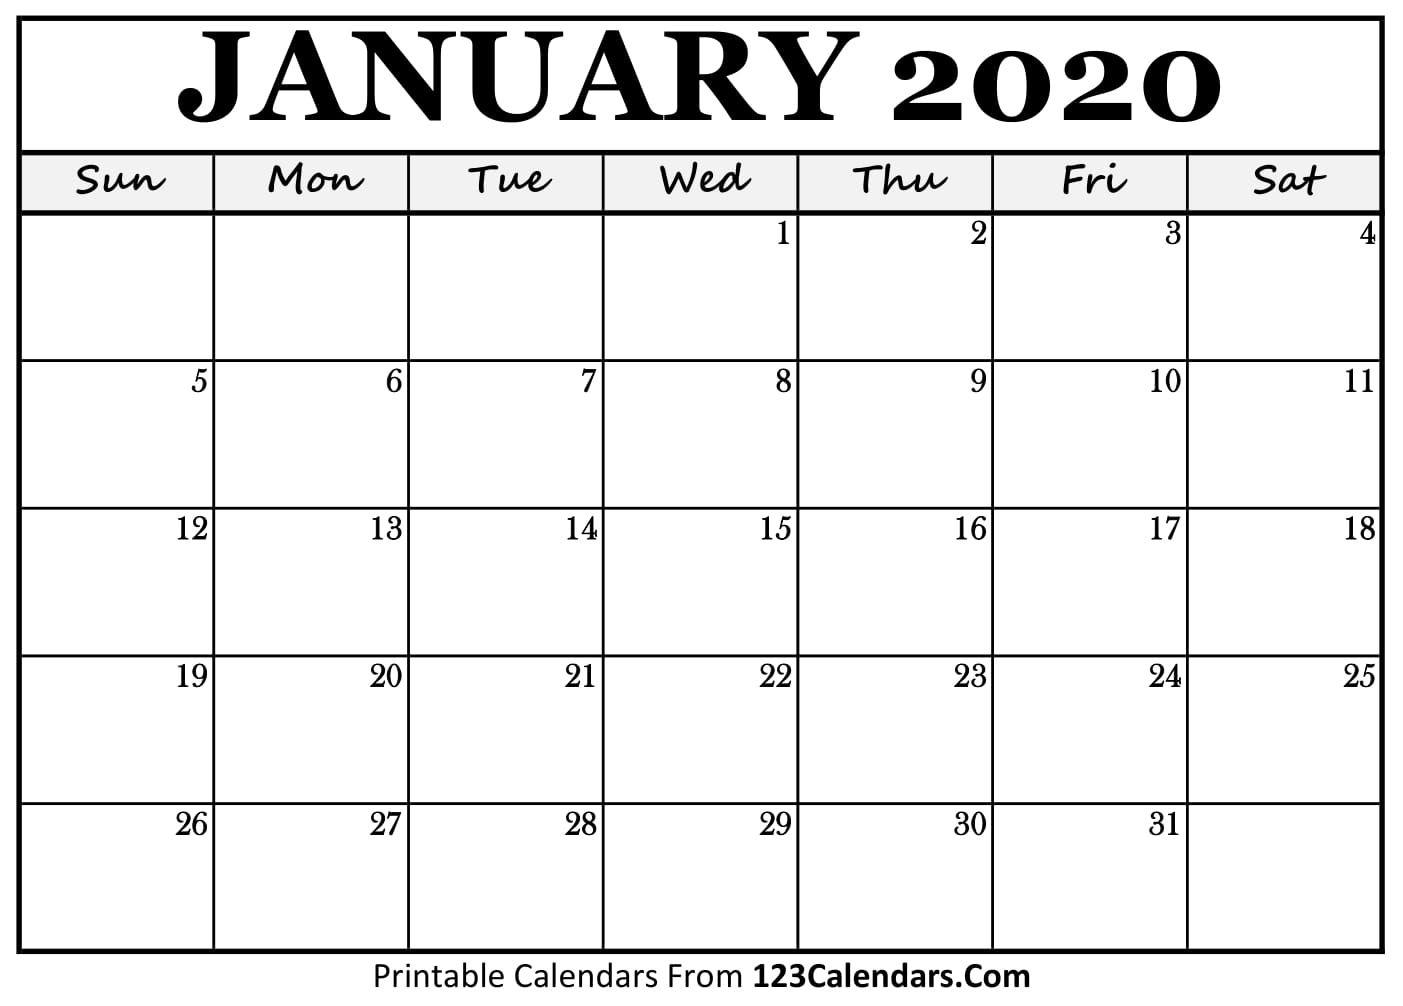 January 2020 Printable Calendar | 123Calendars pertaining to January 2020 Calendar 123Calendars